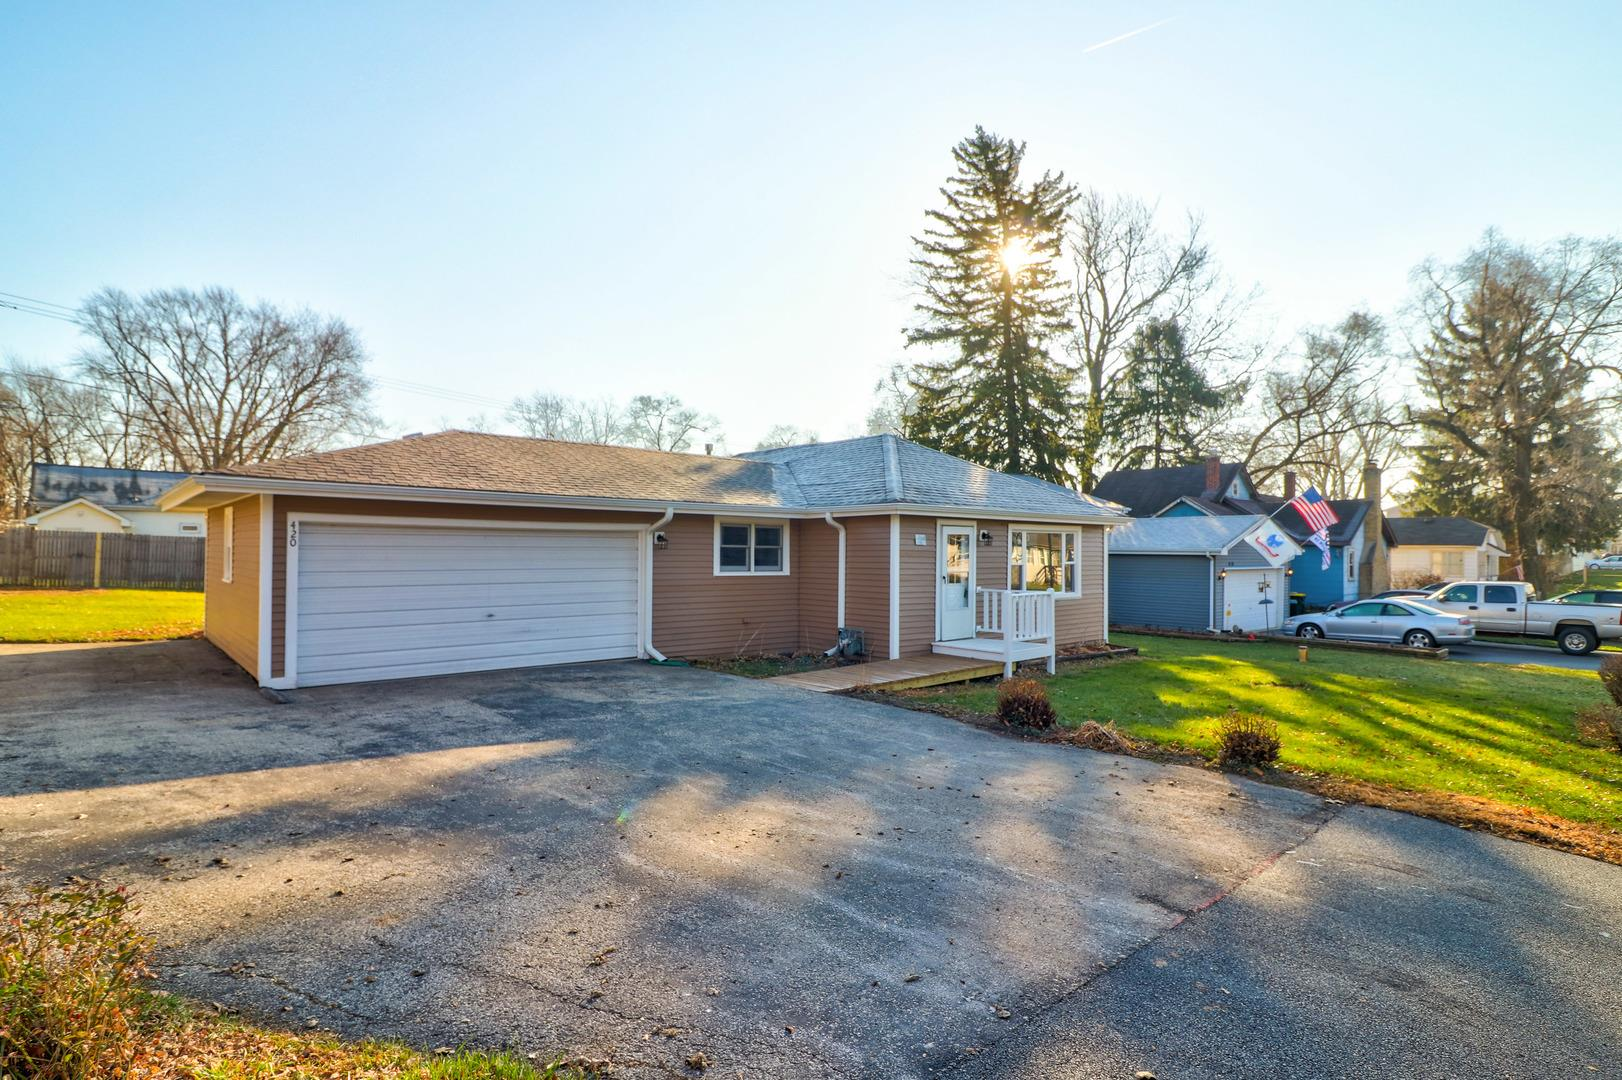 420 Santa Barbara Road, Lakemoor, IL 60051 - #: 10939122